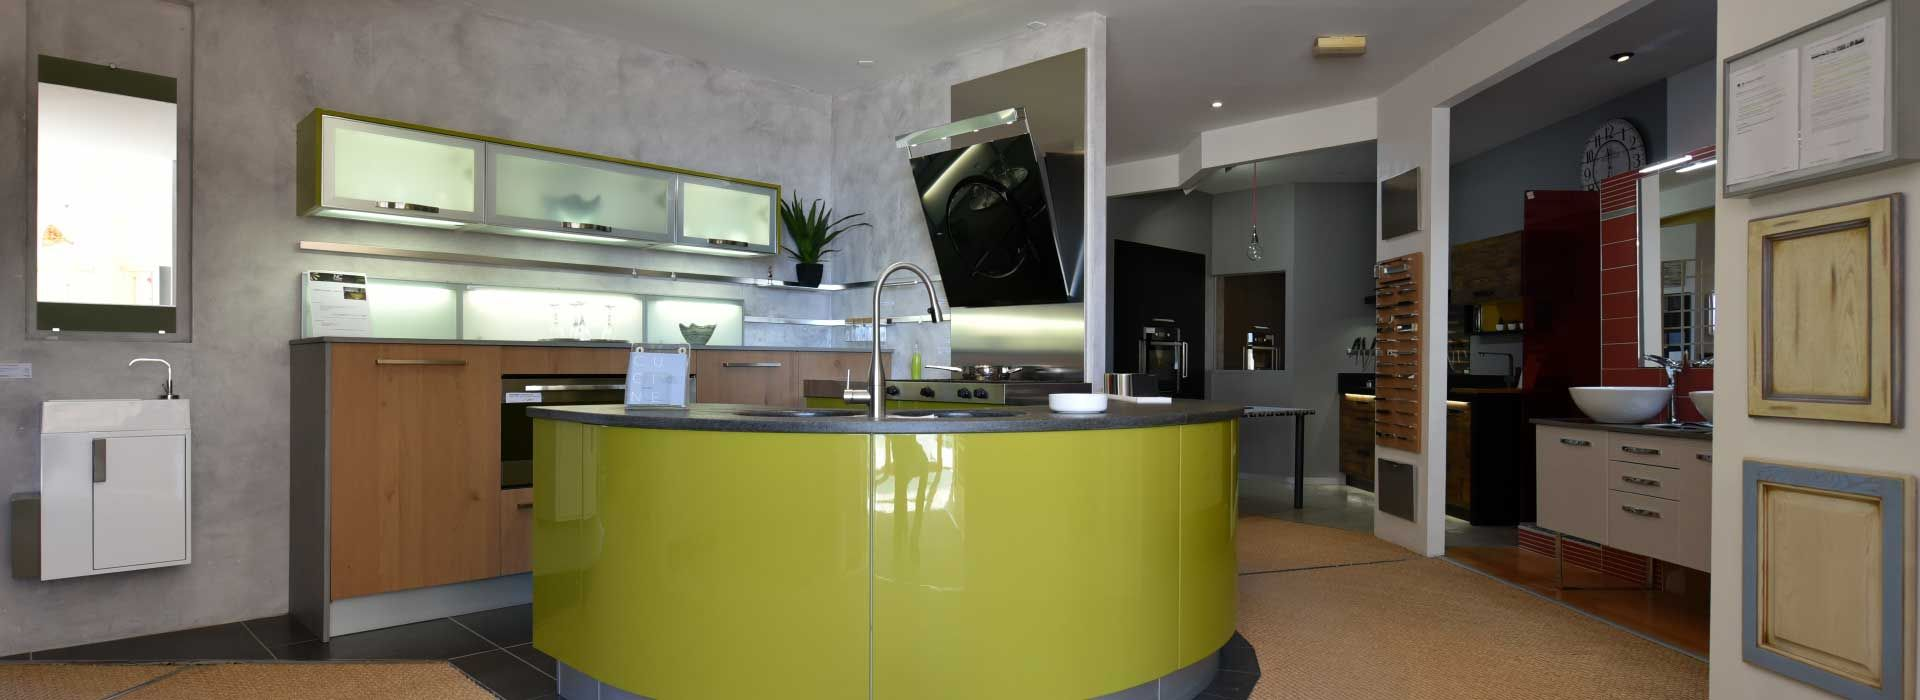 showroom-nc-creation-vinsobres-design-rond-vert-granit-flamme-